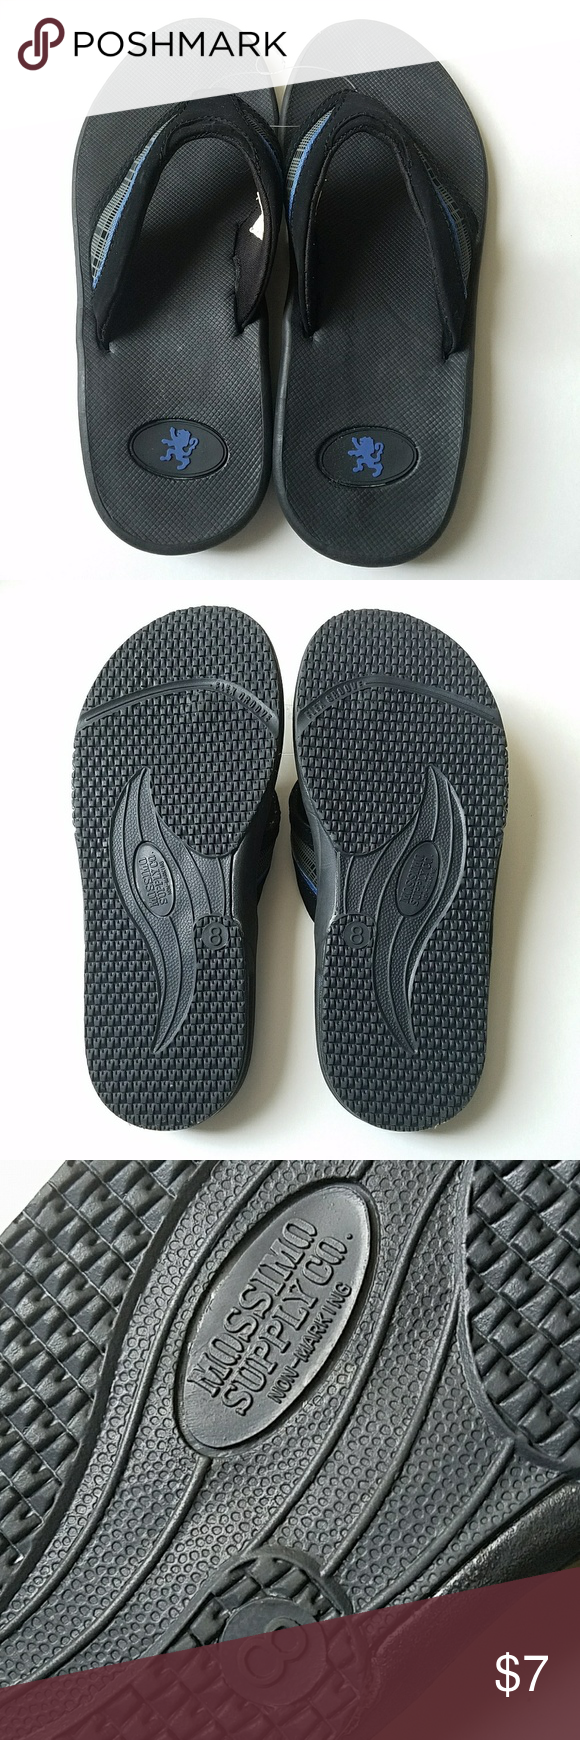 0c6690bc22ae NWOT Mossimo flip flops New Mossimo size 8 men s flip flops Mossimo Supply  Co. Shoes Sandals   Flip-Flops